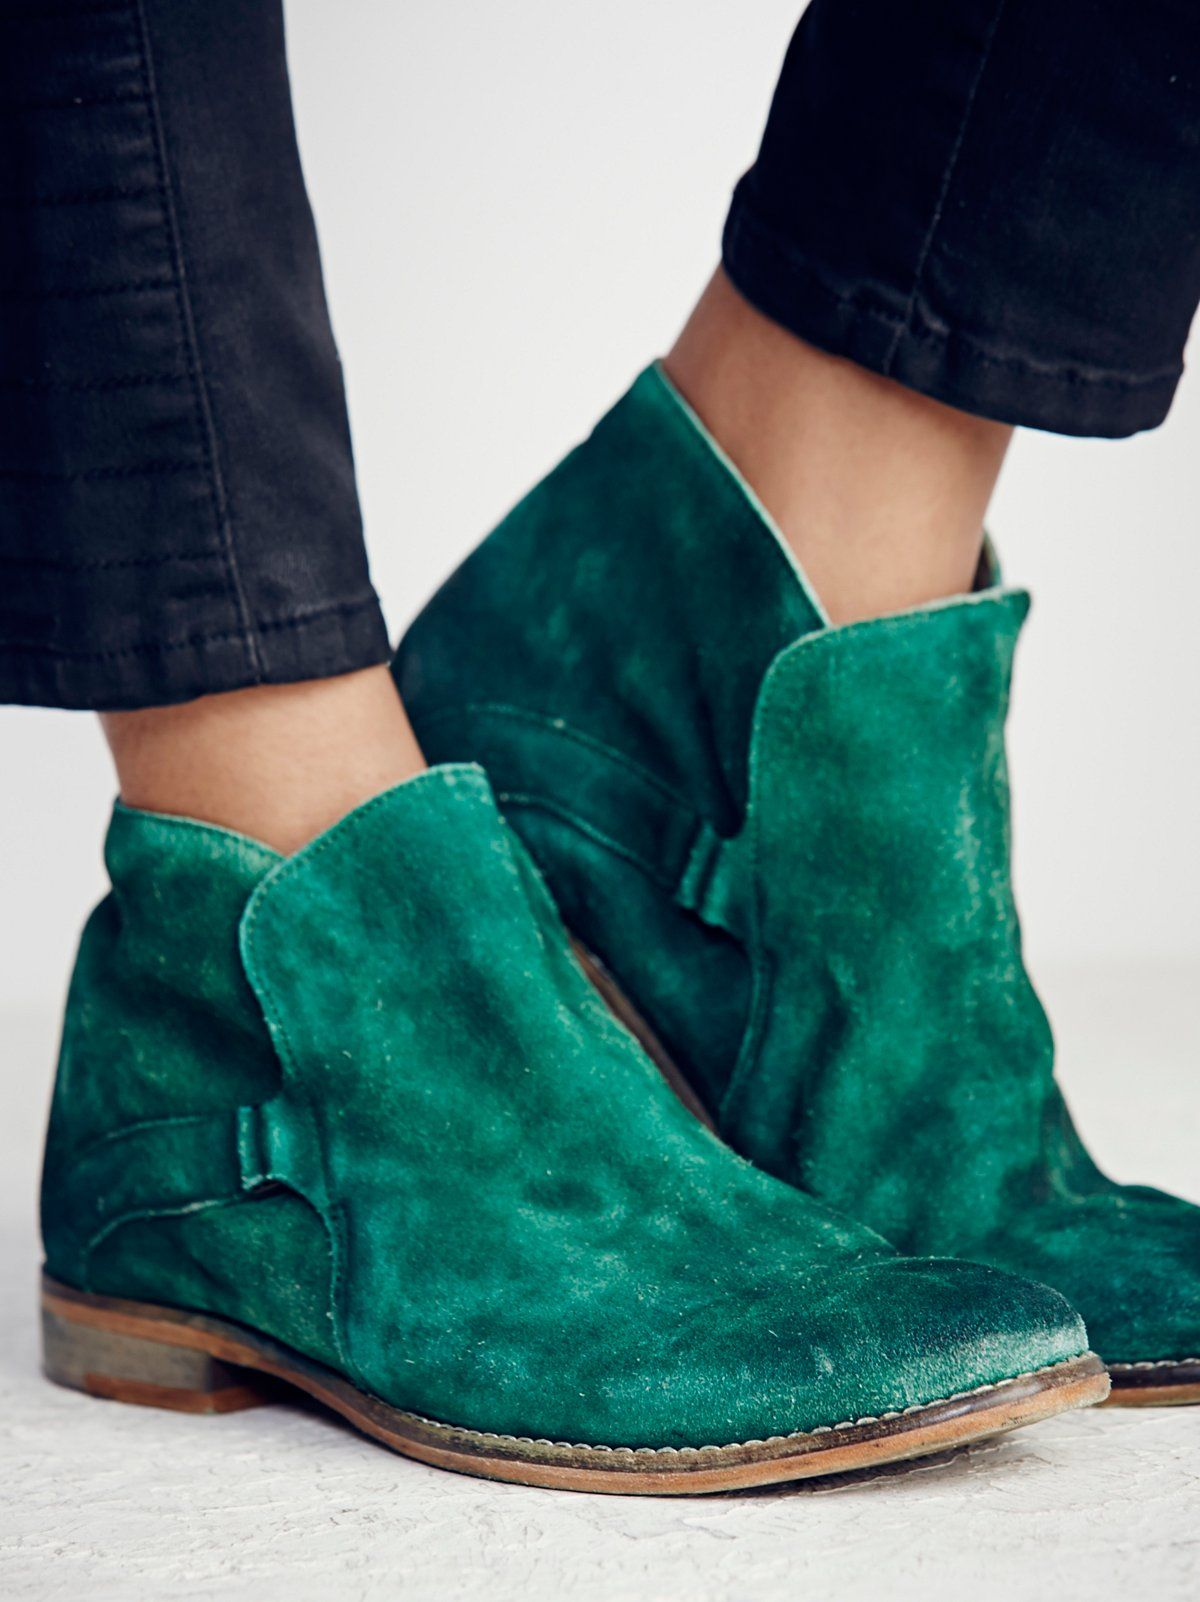 Summit Ankle Boot (With images) | Boots